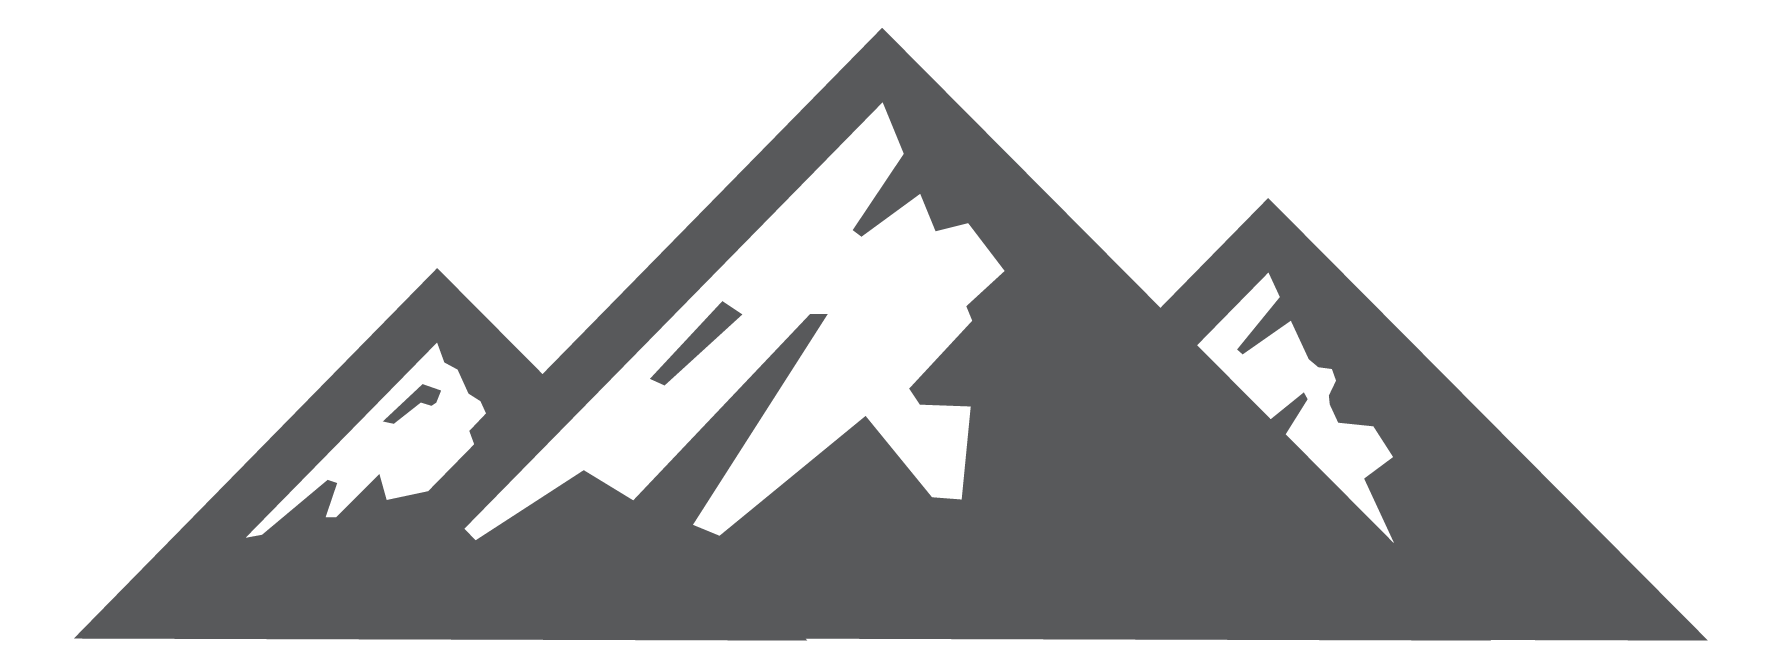 Mountains PNG images free download, mountain PNG.